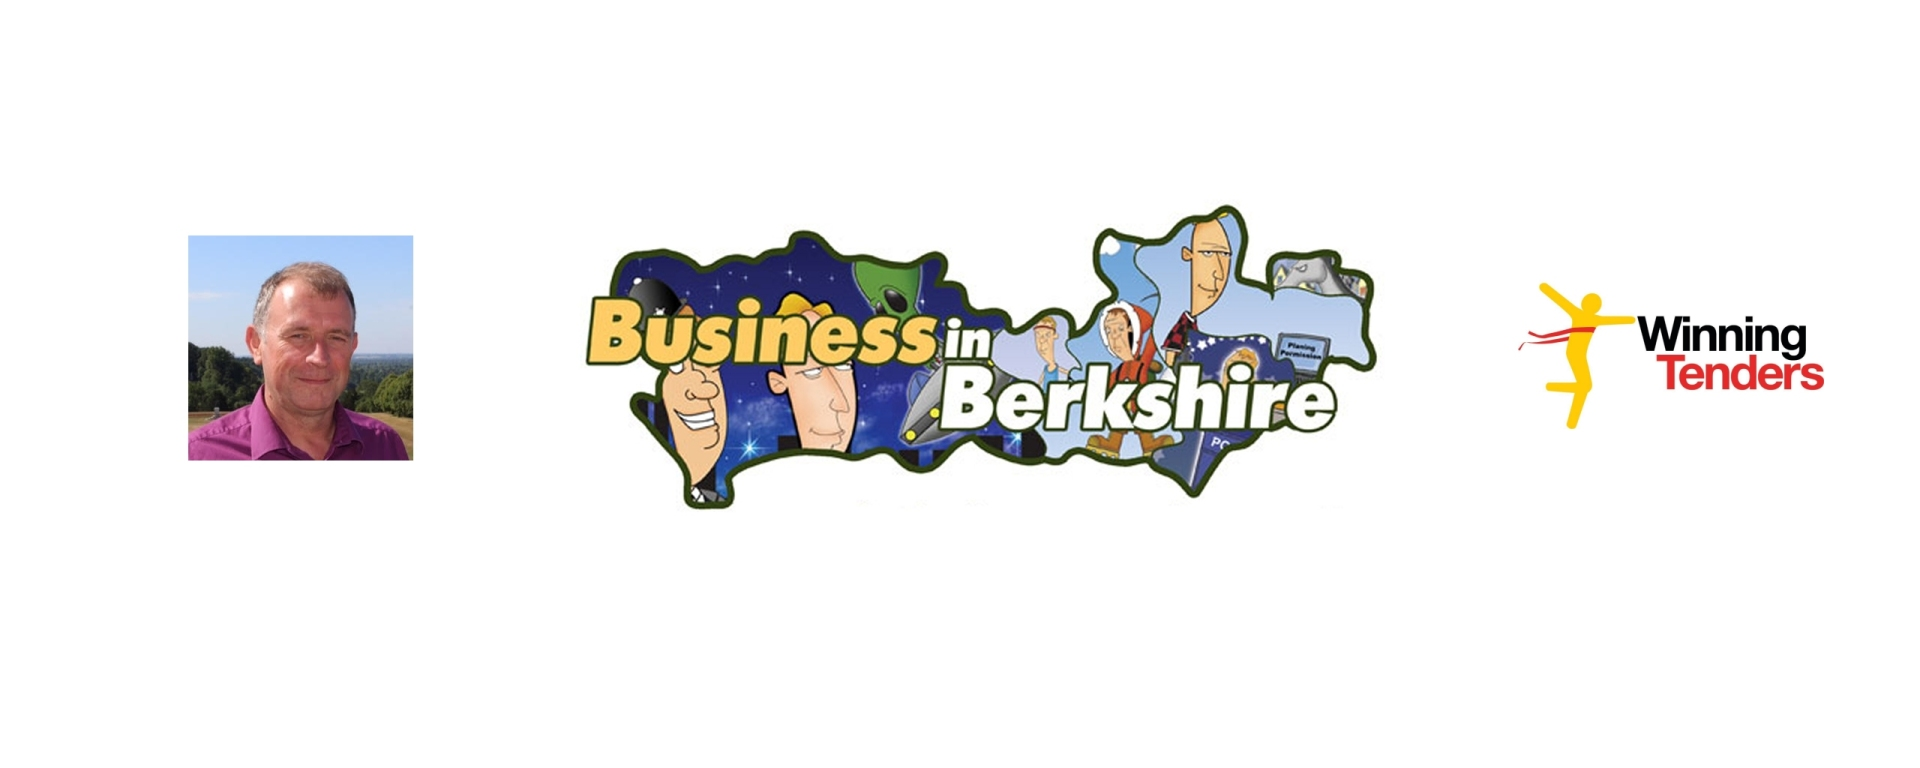 Business in Berkshire Youtube Channel